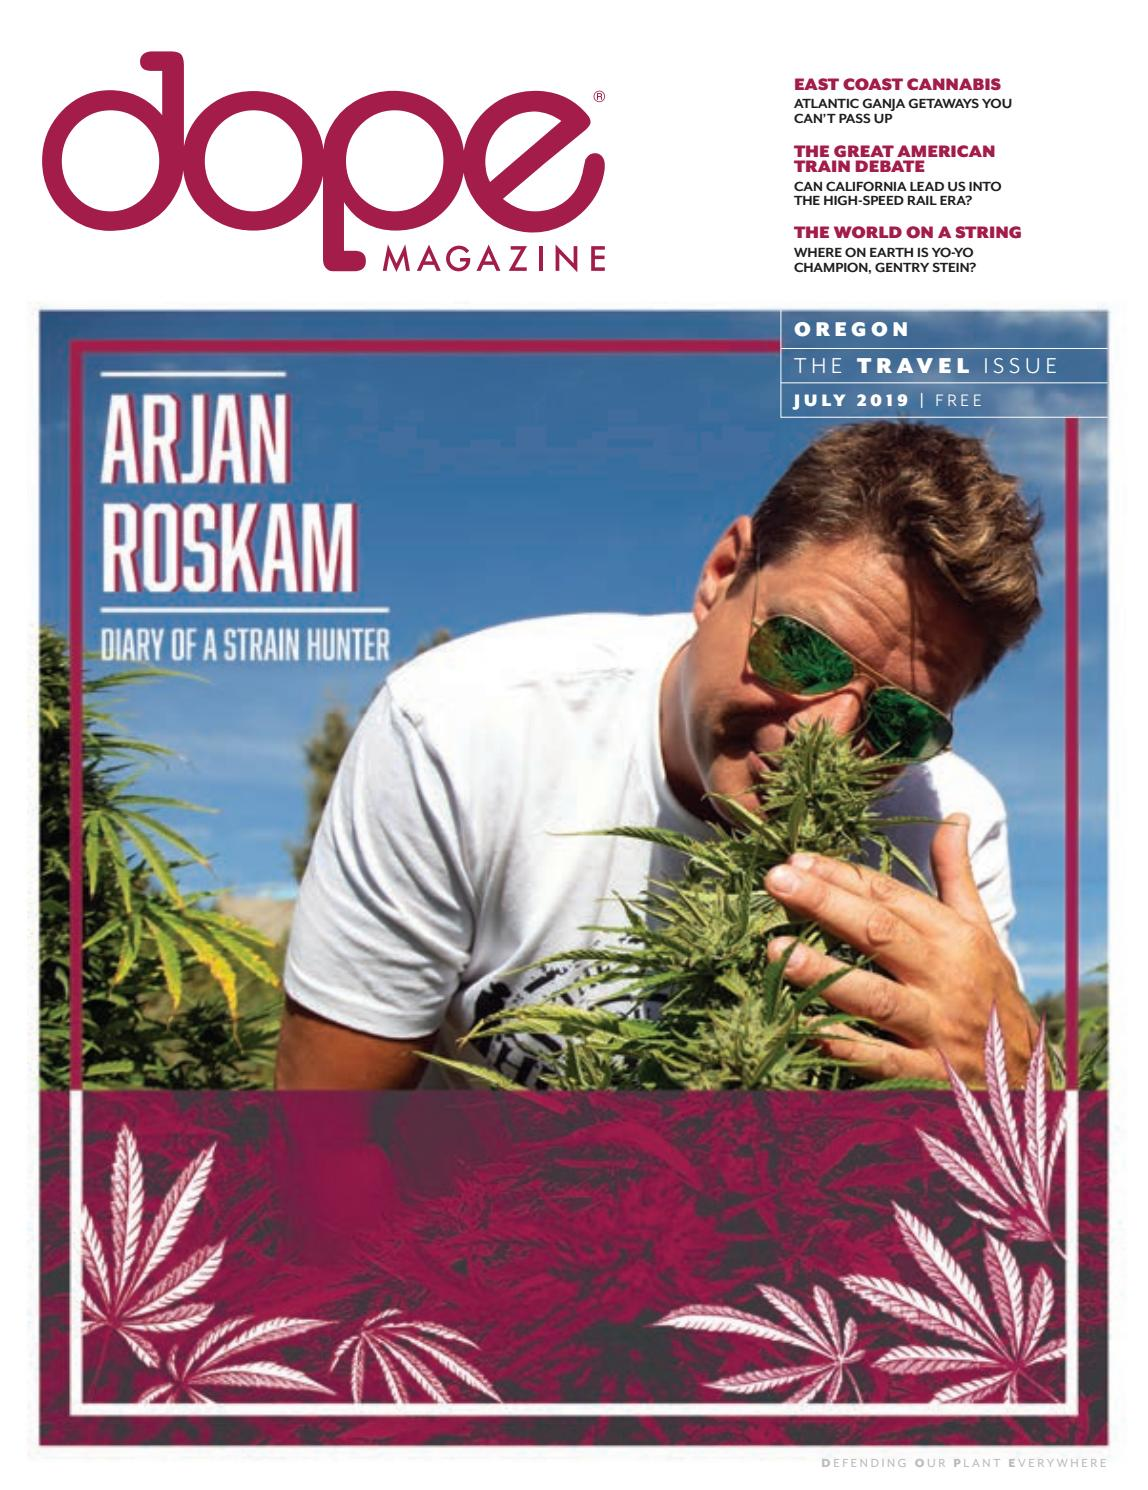 DOPE Magazine - Oregon - The Travel Issue - July 2019 by